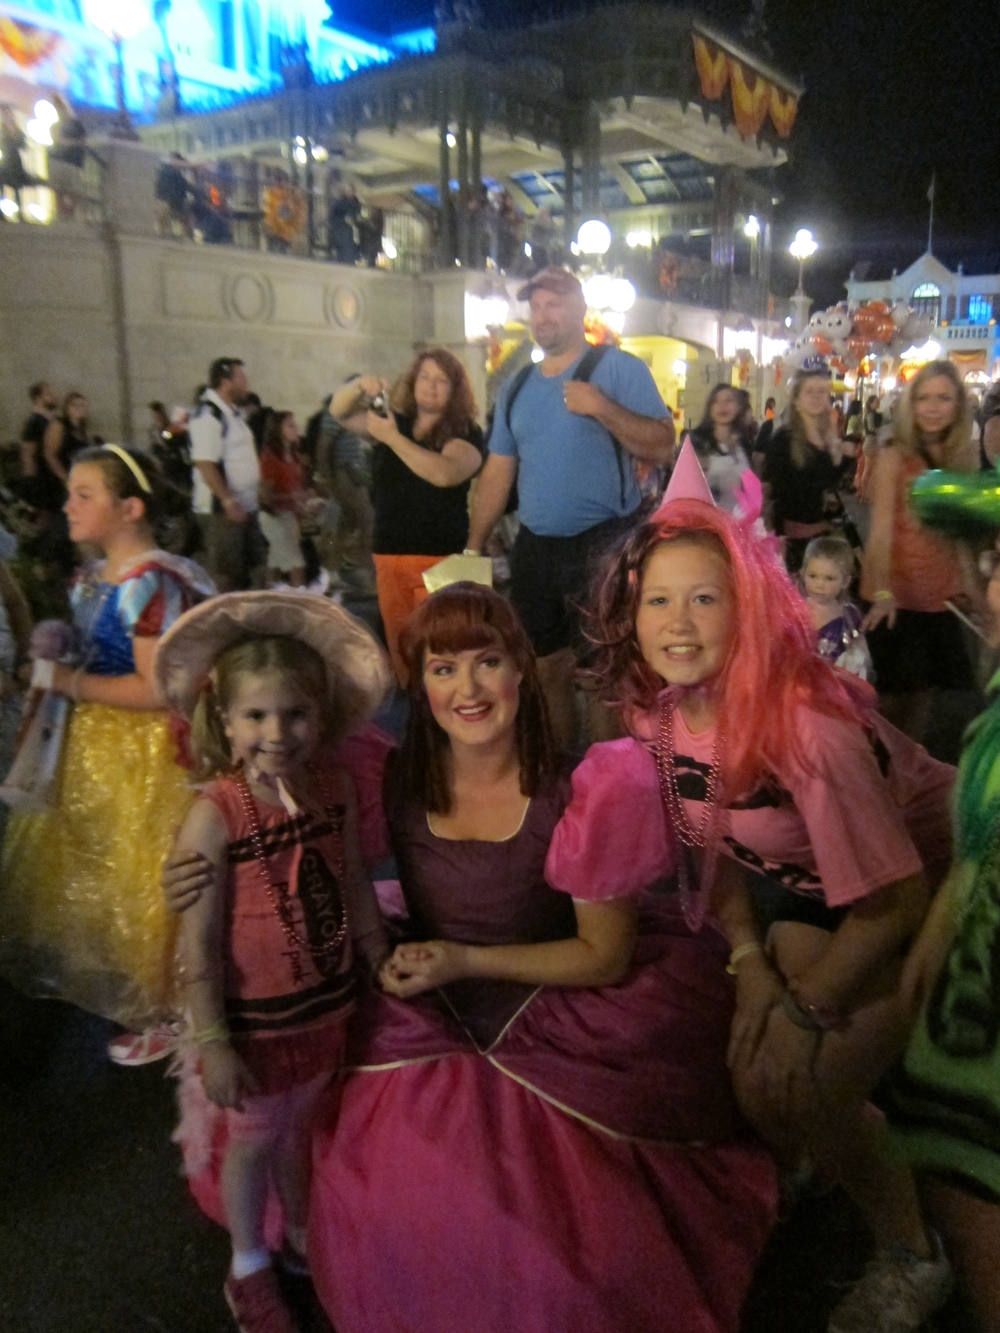 The other Ugly Stepsister was happy to pose as pink for both Viola and her cousin!